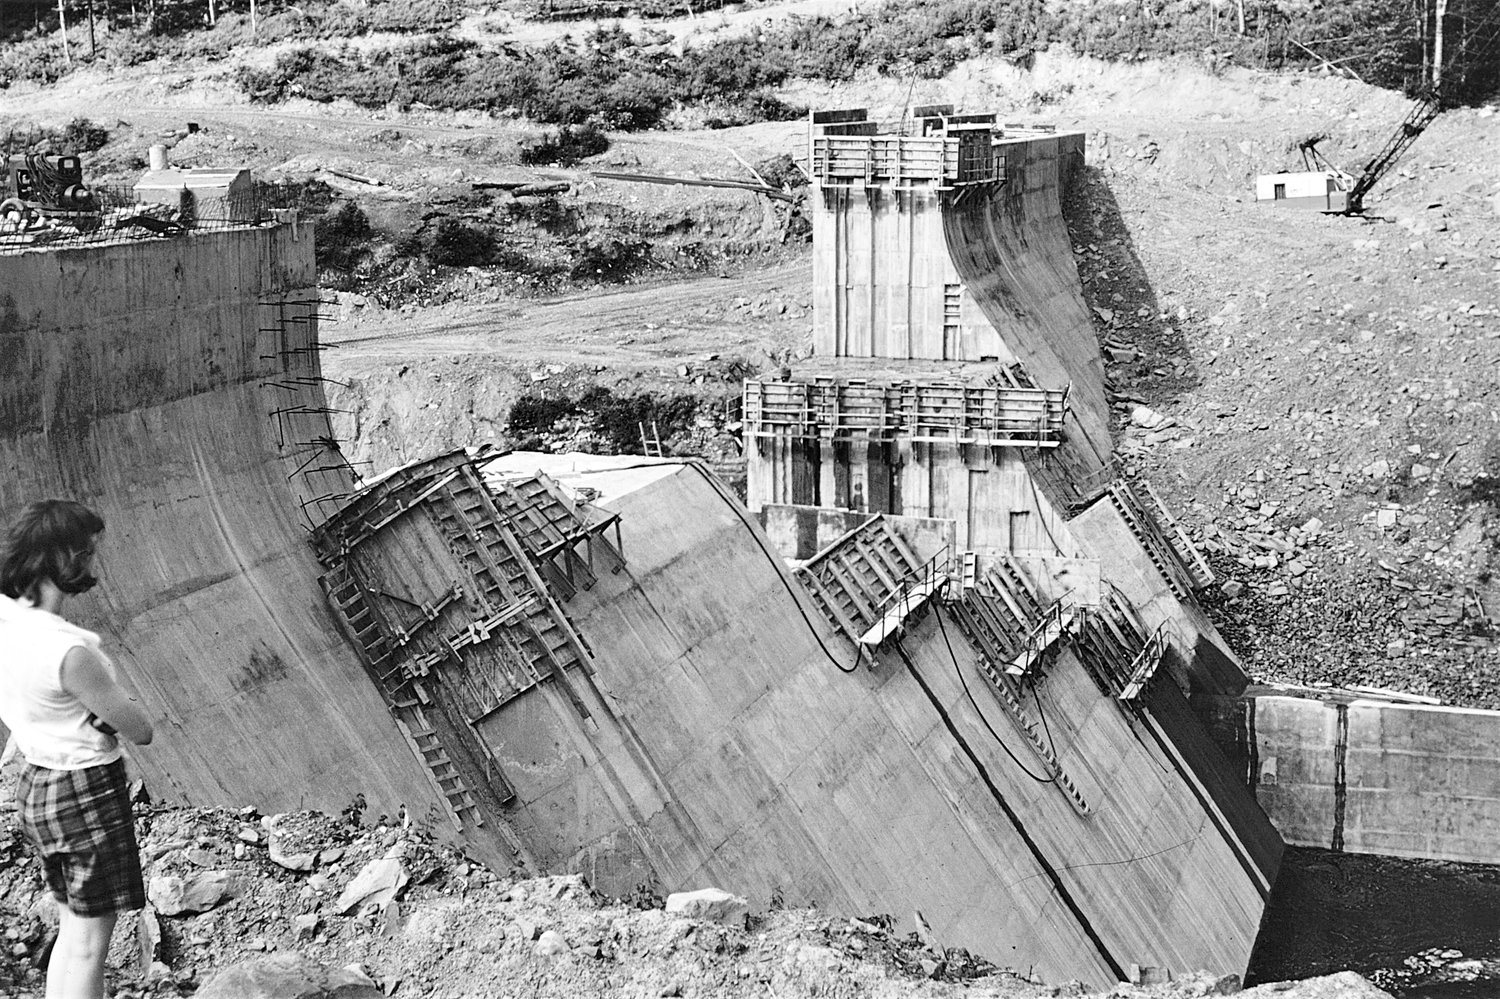 OVERLOOK — An unidentified person looks over the construction of Boyd Dam, in this photo from July 1959.The dam impounds water from Lake Tagasoke, to Fish Creek, where it is impounded by Kessinger Dam, and then flows to a mile-long rock tunnel to the reservoirs in Lee.